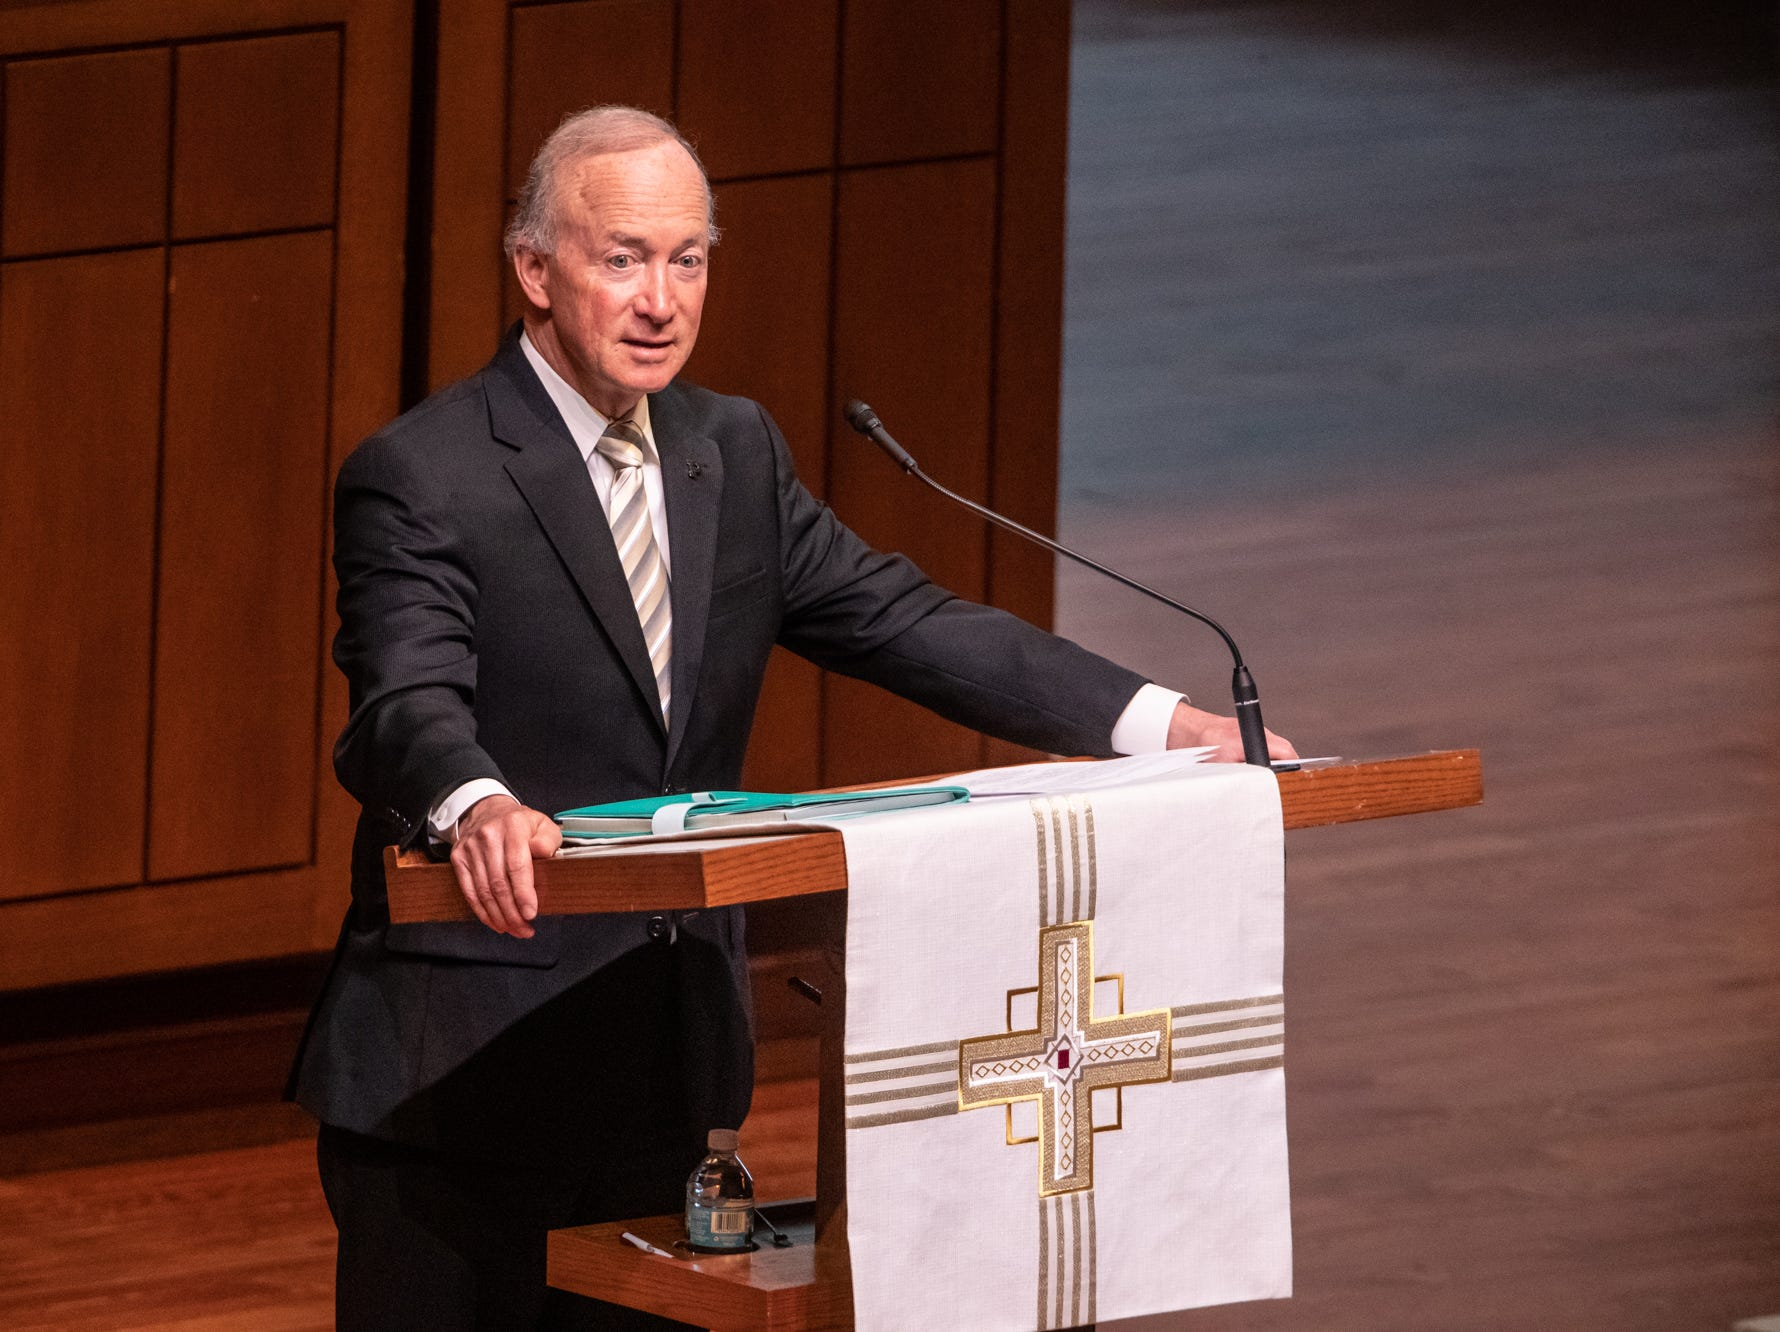 Former Indiana Gov. Mitch Daniels speaks during a memorial service for former U.S. Sen. Richard Lugar during a memorial service held at Saint Luke's United Methodist Church in Indianapolis, on Wednesday, May 15, 2019. Lugar served as mayor of Indianapolis from 1968 to 1975 and U.S. senator from 1977 to 2013. He died April 28, 2019, at the age of 87.